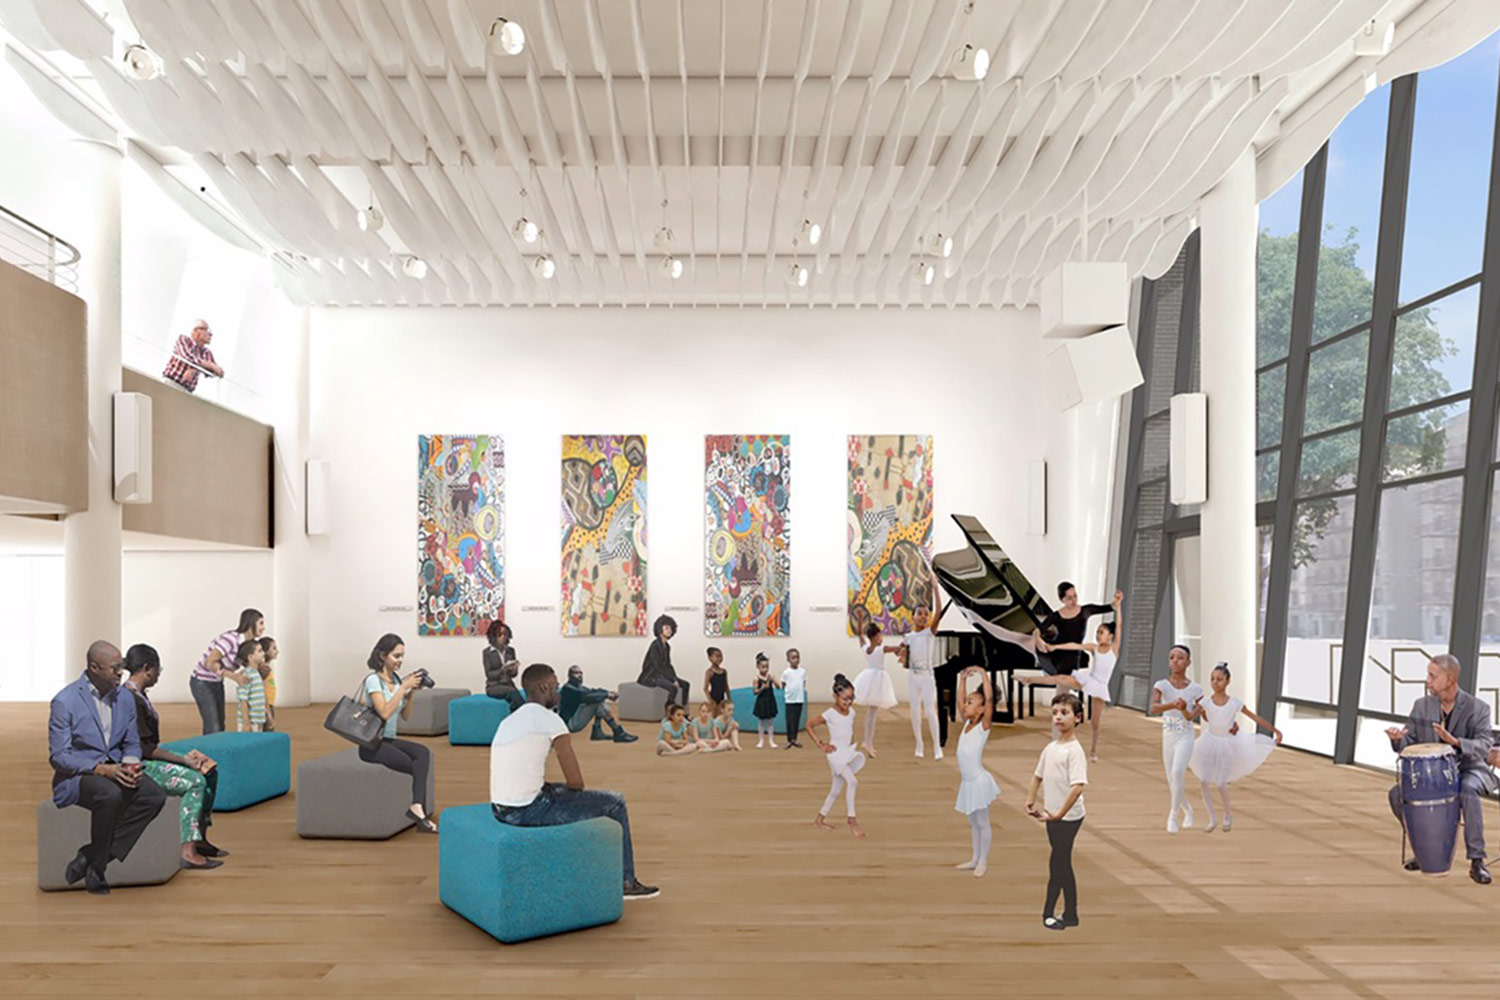 "the Herb Alpert Foundation, is funding the core element of the $9.5 million Harlem School of the Arts ""Renaissance Project."" the Alpert's were convinced that the leading architectural/acoustic/systems design firm WSDG embodied a philosophical synergy that fully aligned with their goals for the school building's renovation. Herb Alpert Center interior render."